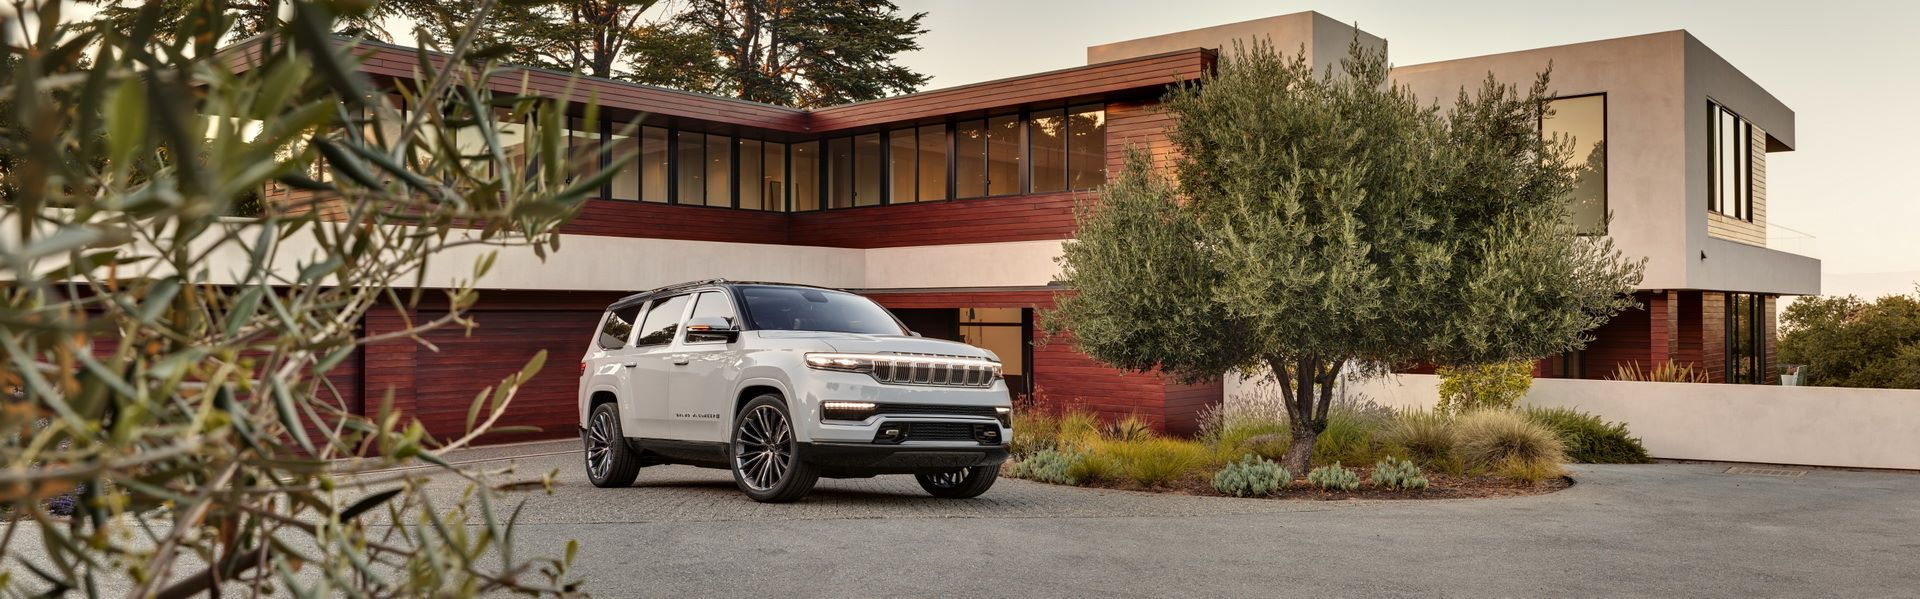 Jeep-Grand-Wagoneer-Concept-20